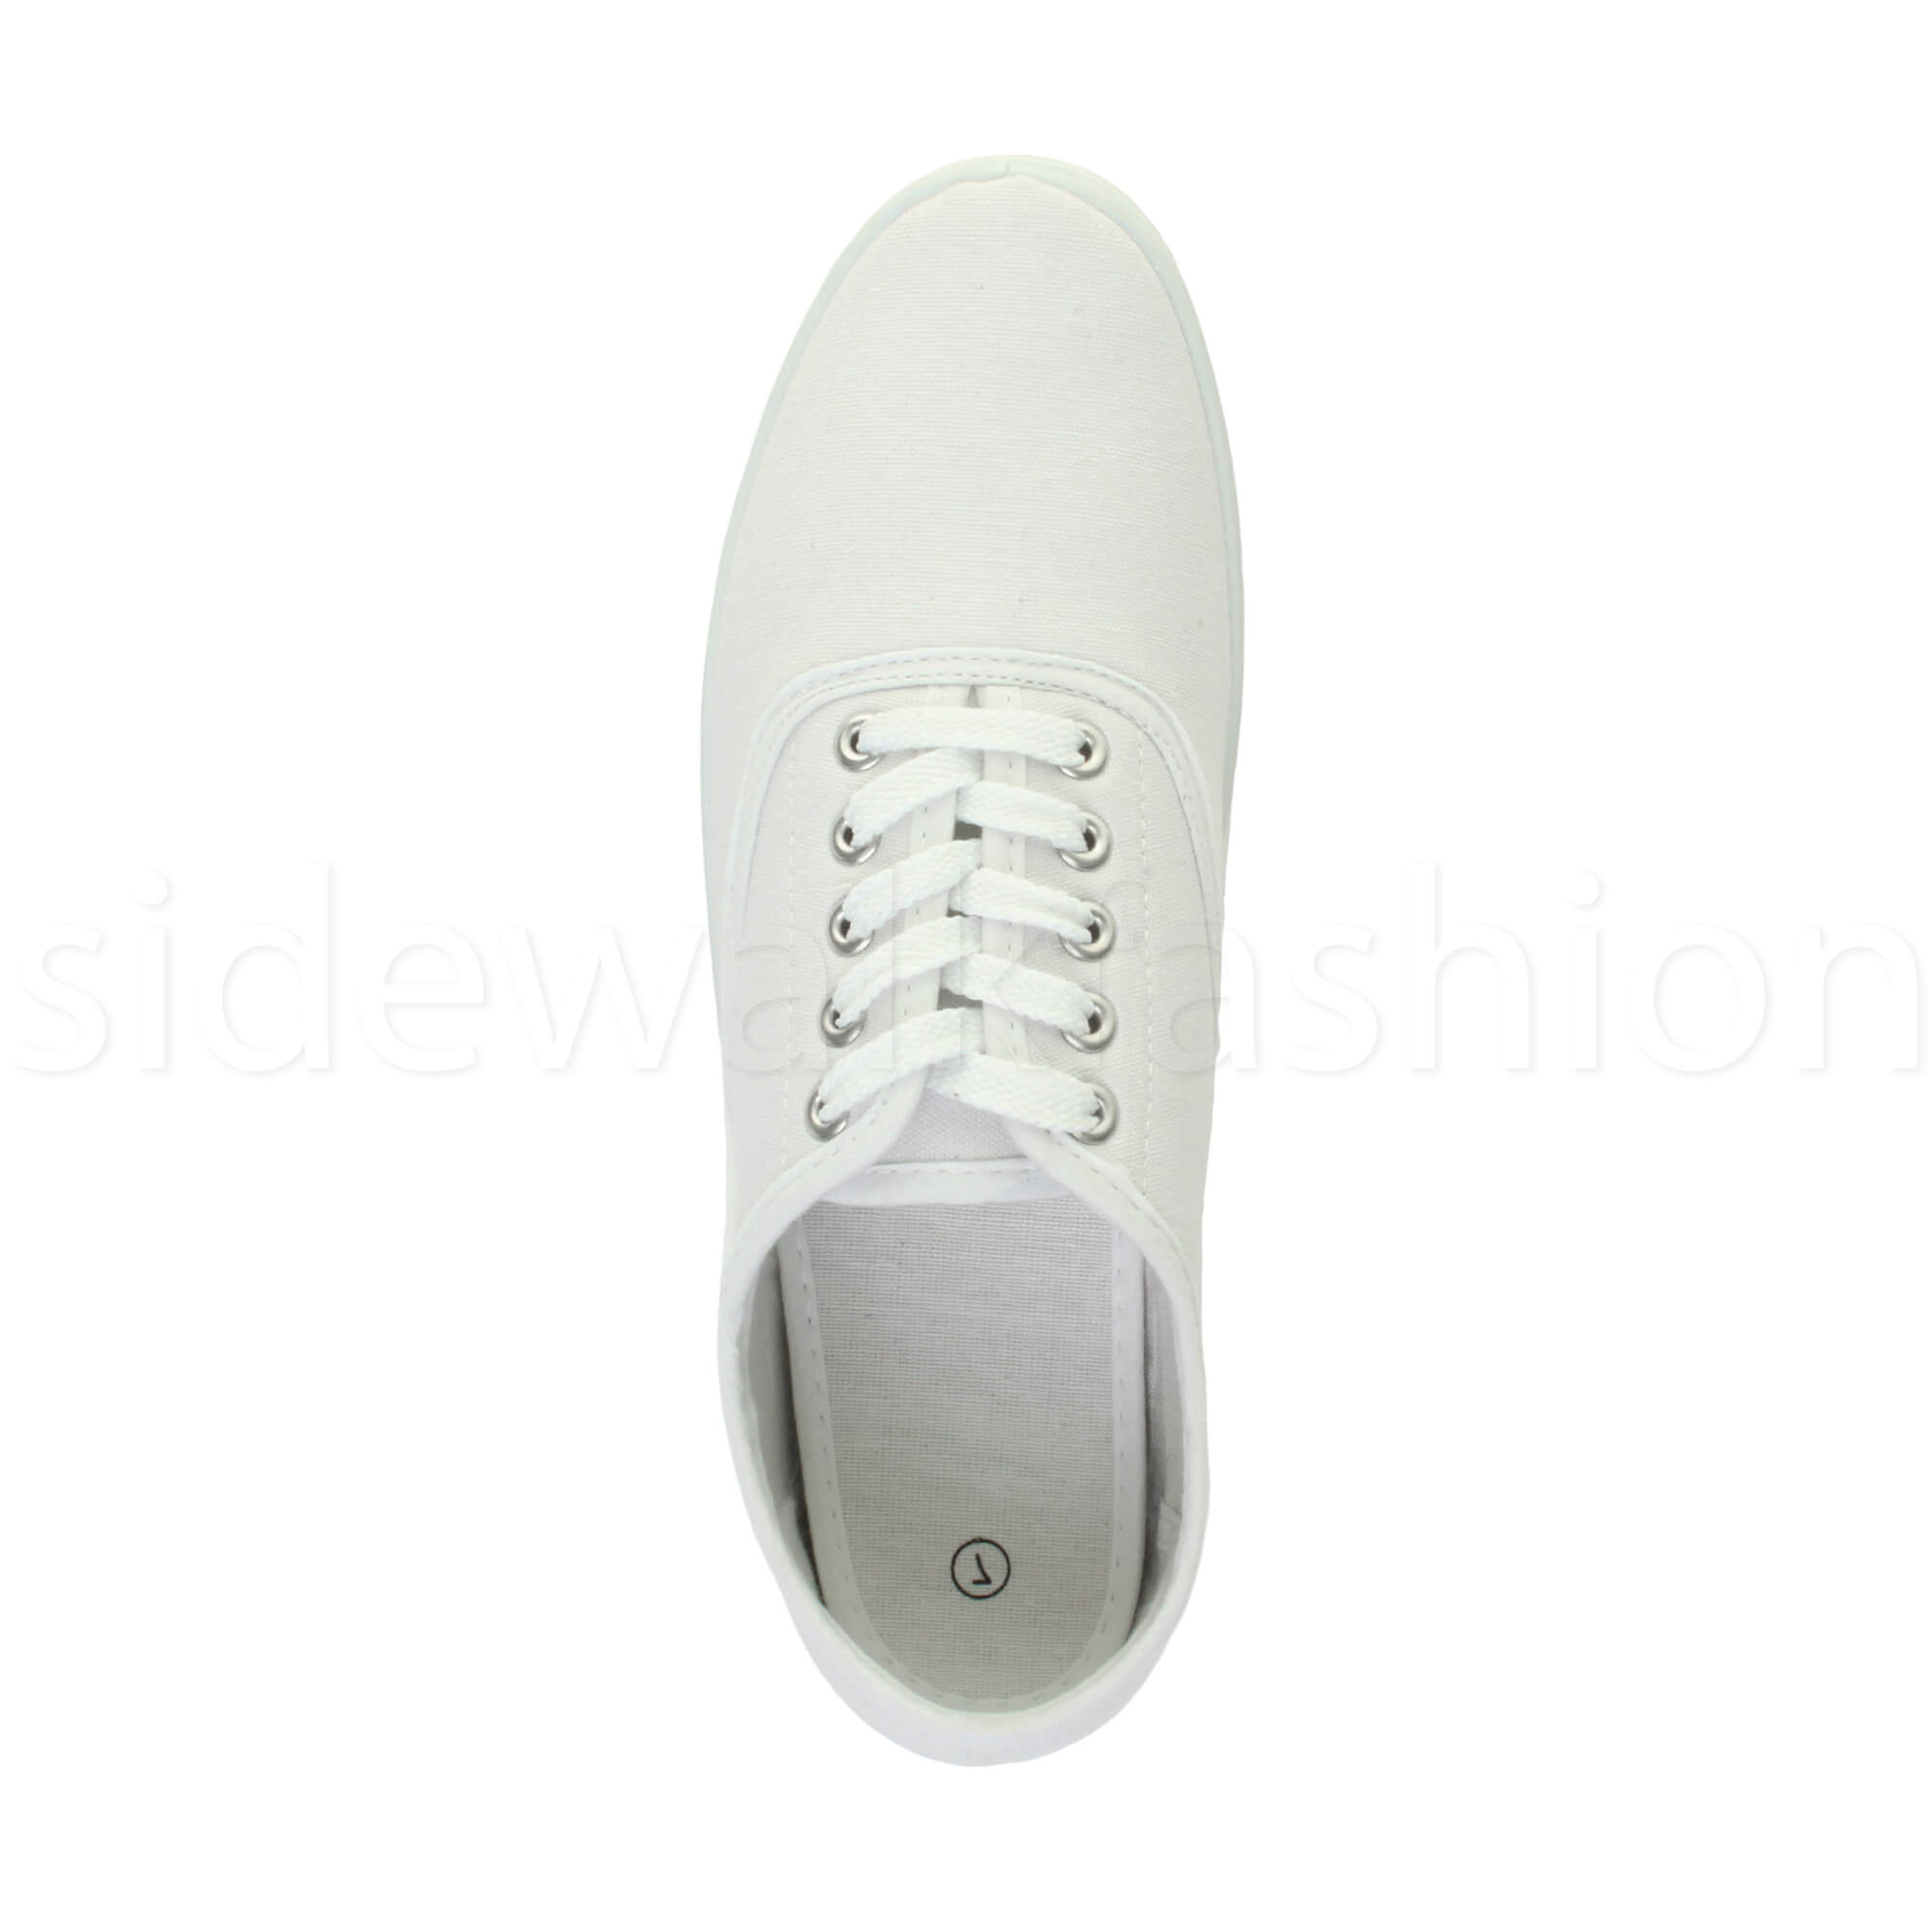 Mens-canvas-trainers-plimsoles-plimsolls-shoes-lace-up-pumps-size thumbnail 27